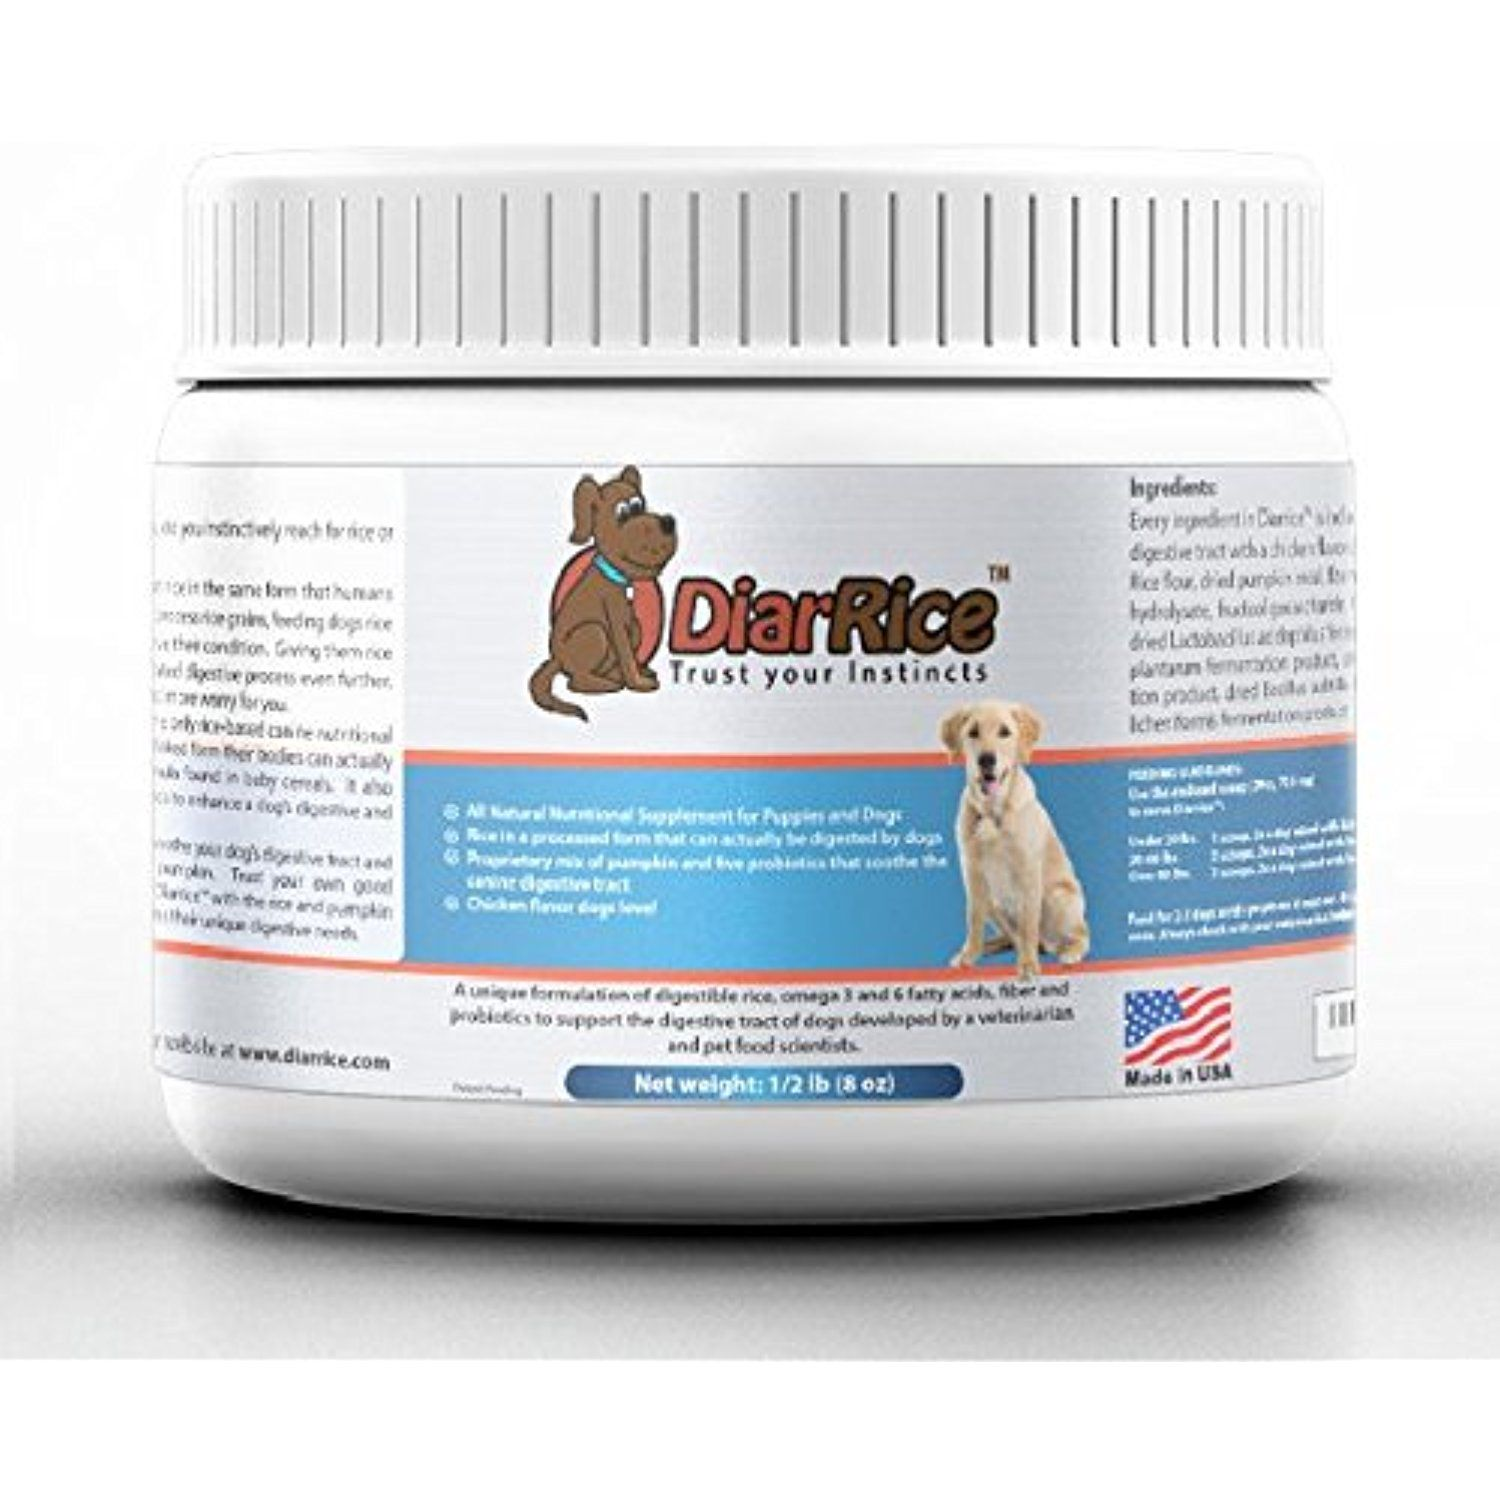 Diarrice for dogs 8 oz all natural probiotic for dogs